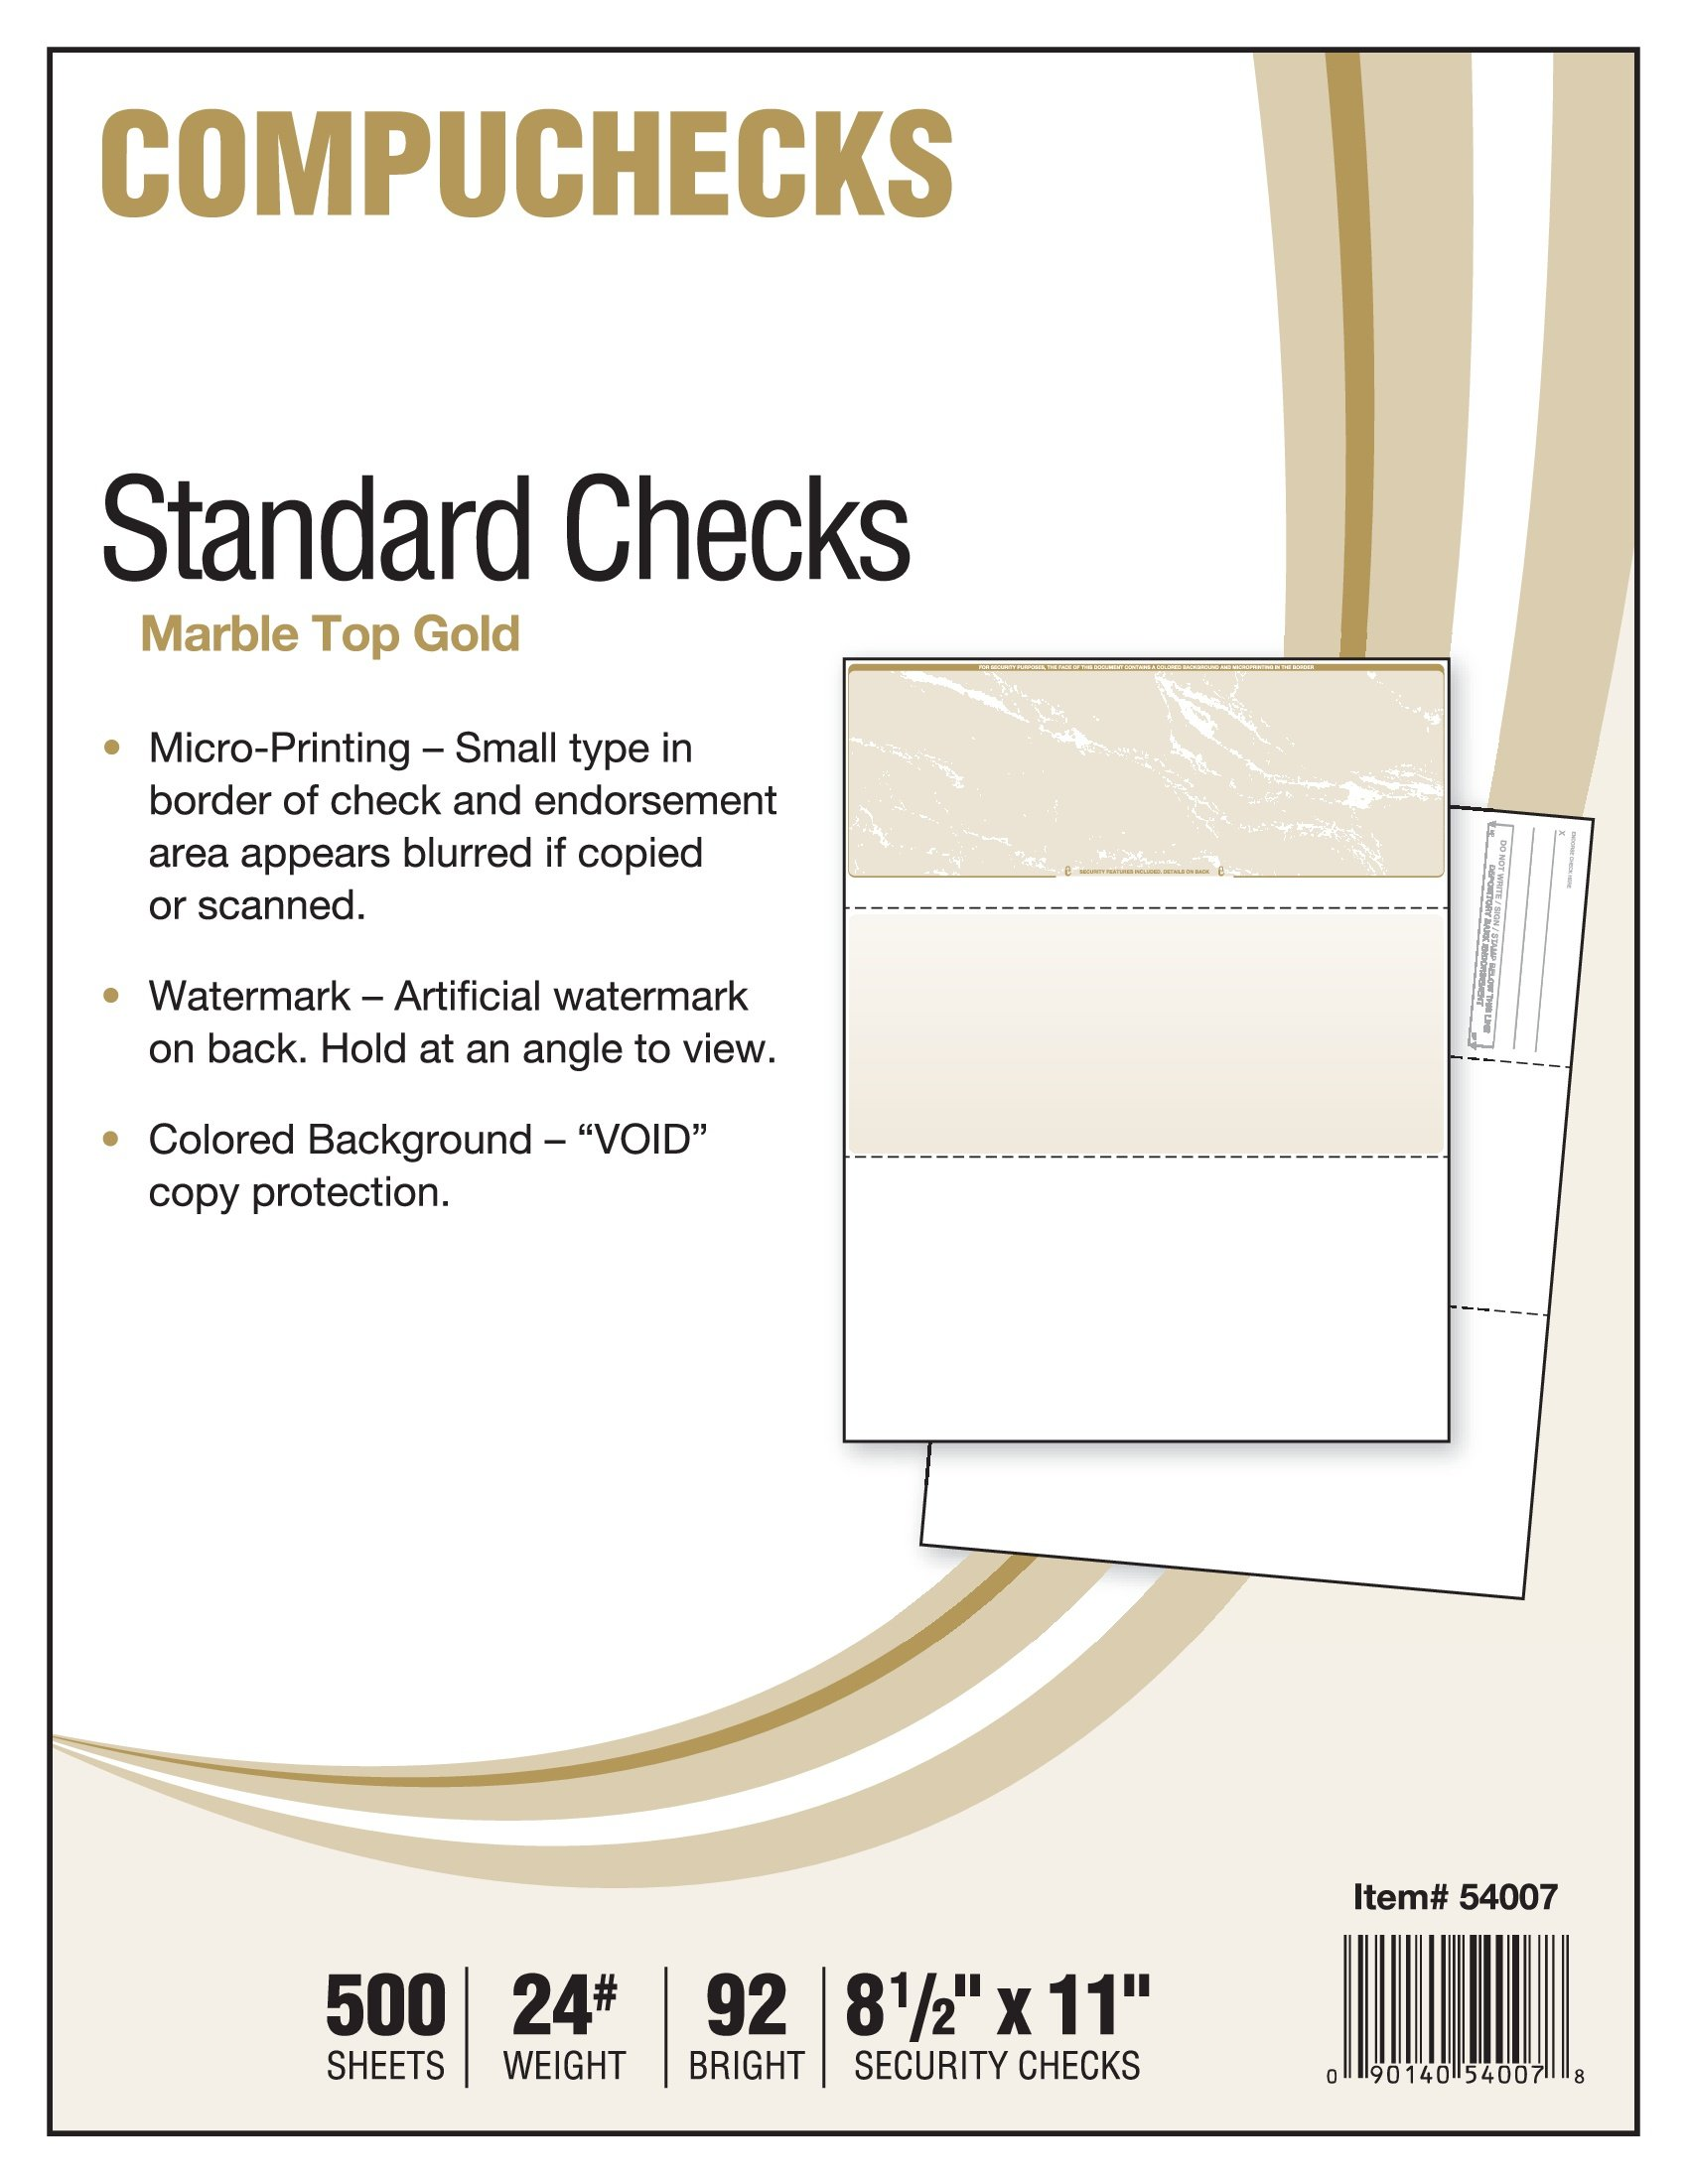 500 Blank Check Stock - Check on Top - Gold Marble by Compuchecks